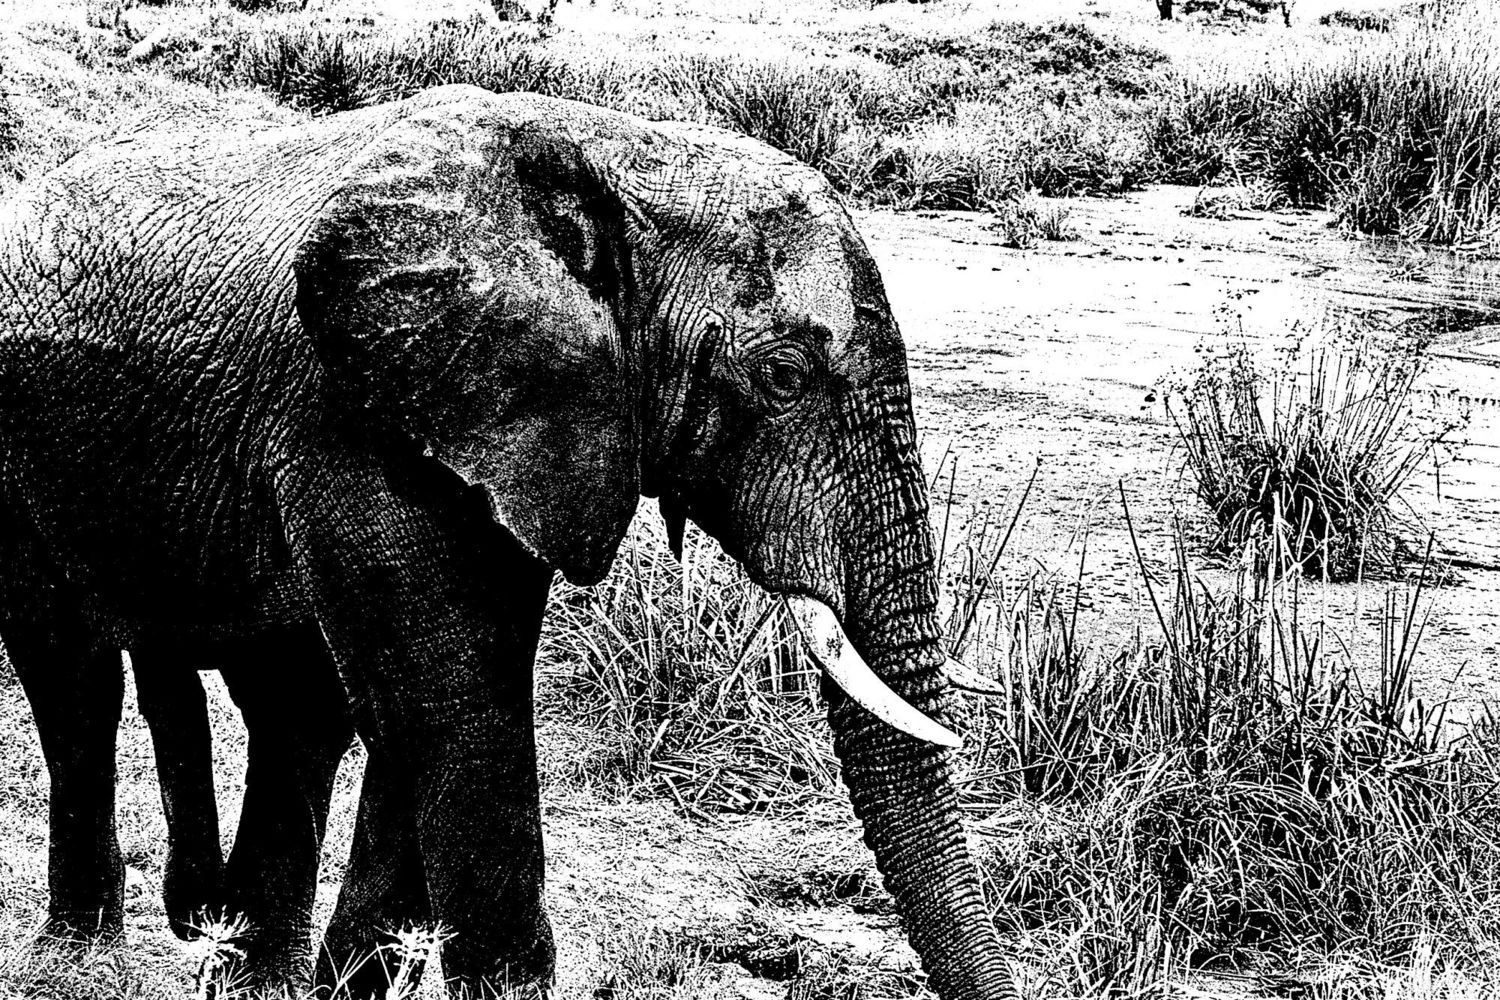 Elephant - 8, Serengeti 2016   Edition 1 of 2